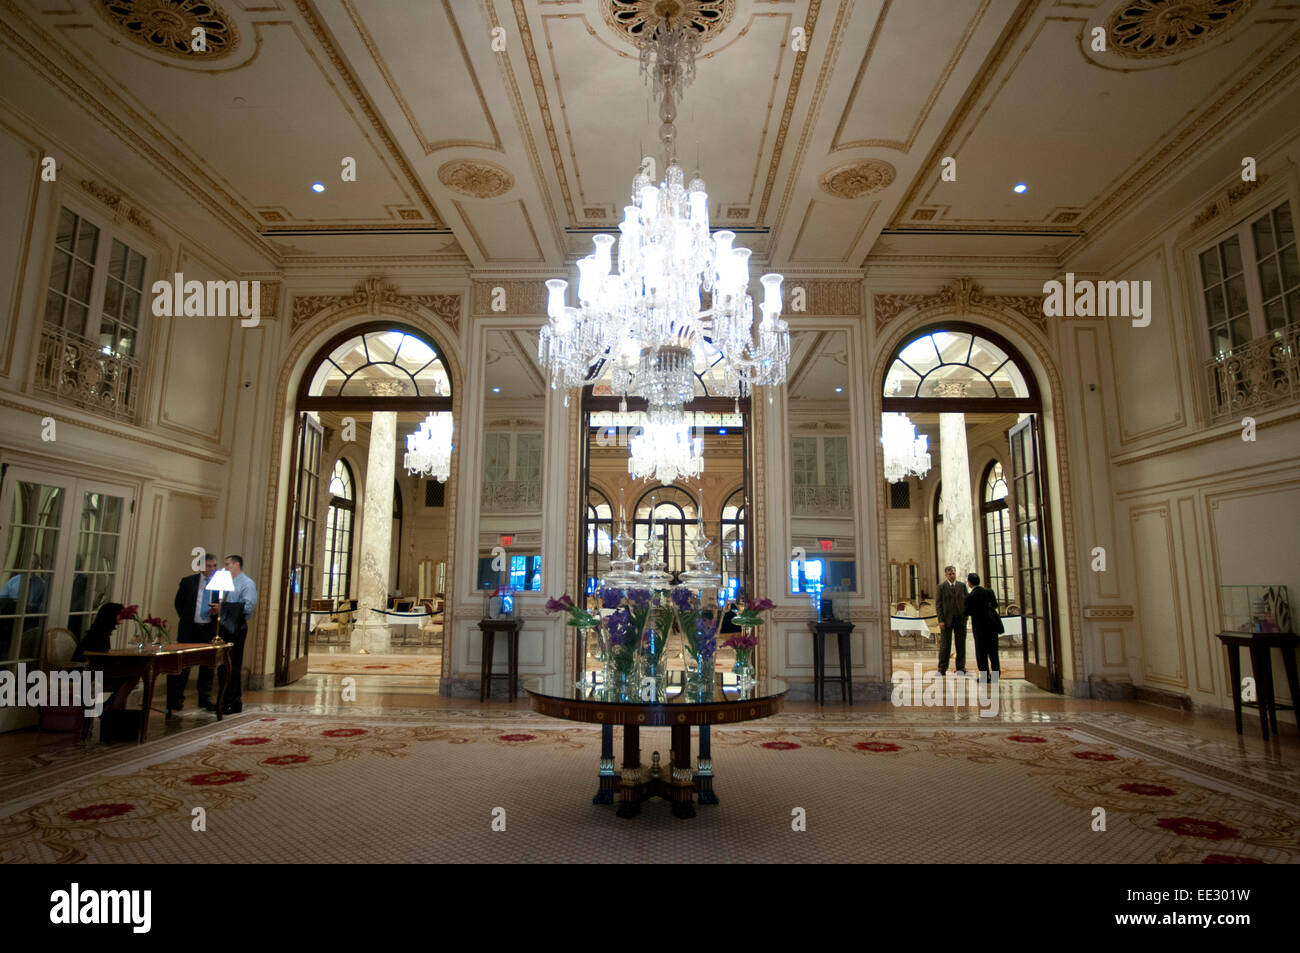 lobby of the plaza hotel new york usa the plaza hotel landmark stock photo 77512565 alamy. Black Bedroom Furniture Sets. Home Design Ideas